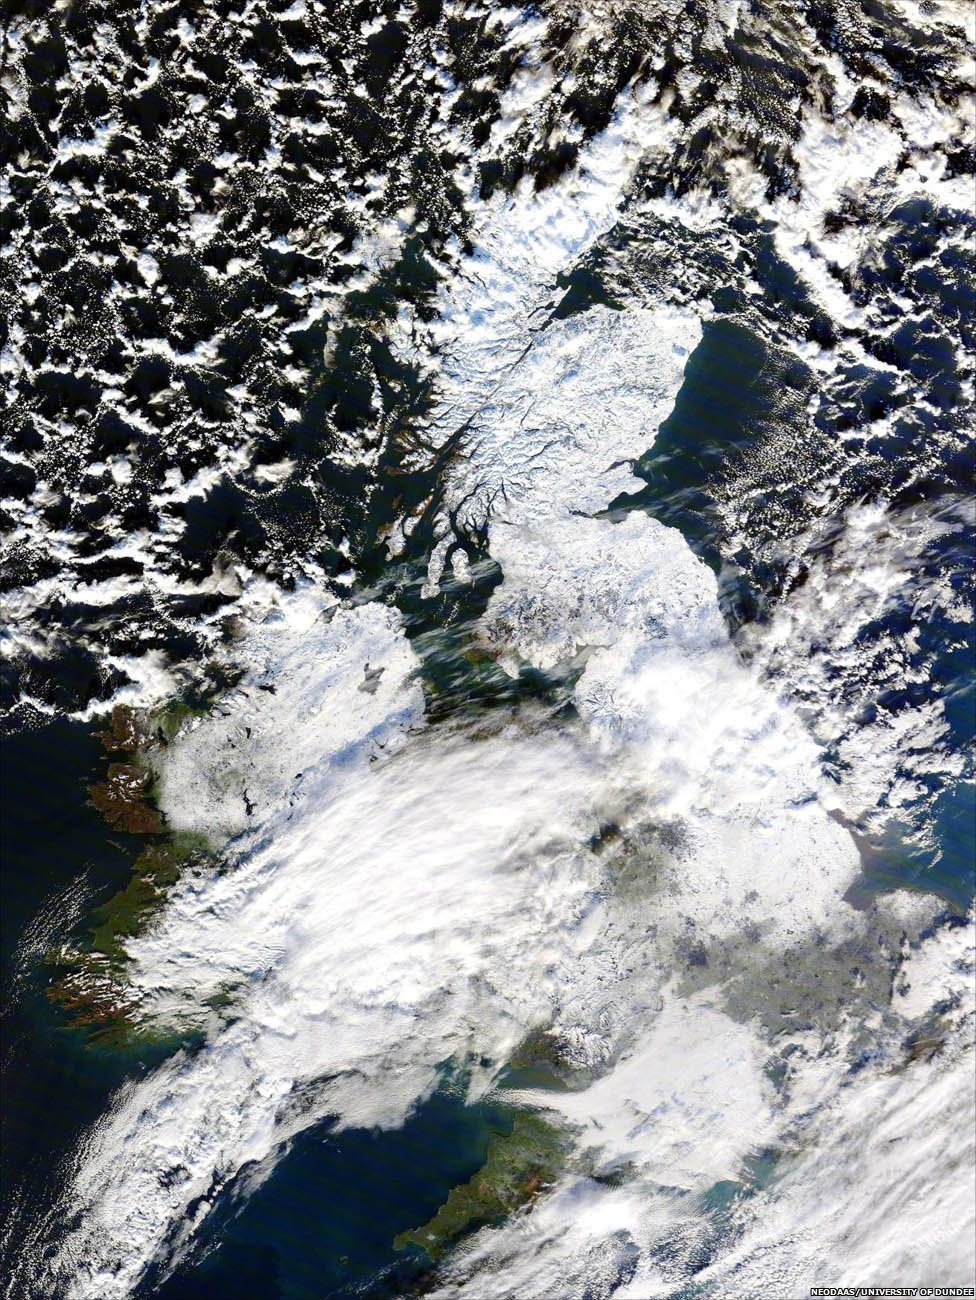 UK covered in snow (Pic courtesy of NEODAAS/University of Dundee)